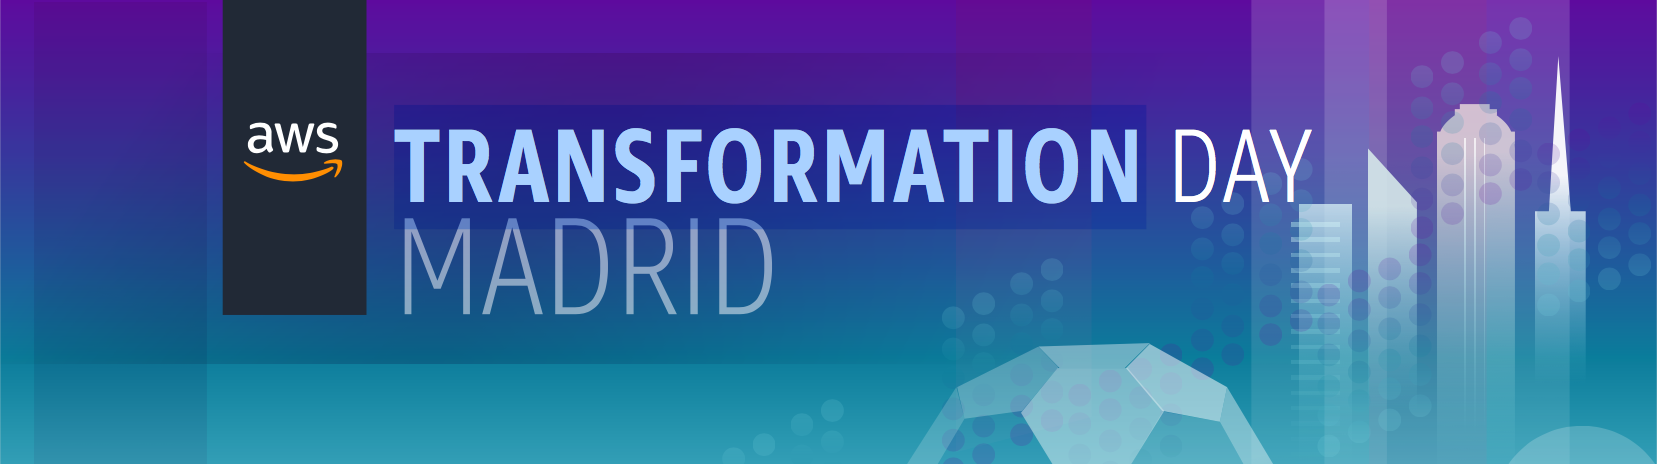 25th October – AWS Transformation Day